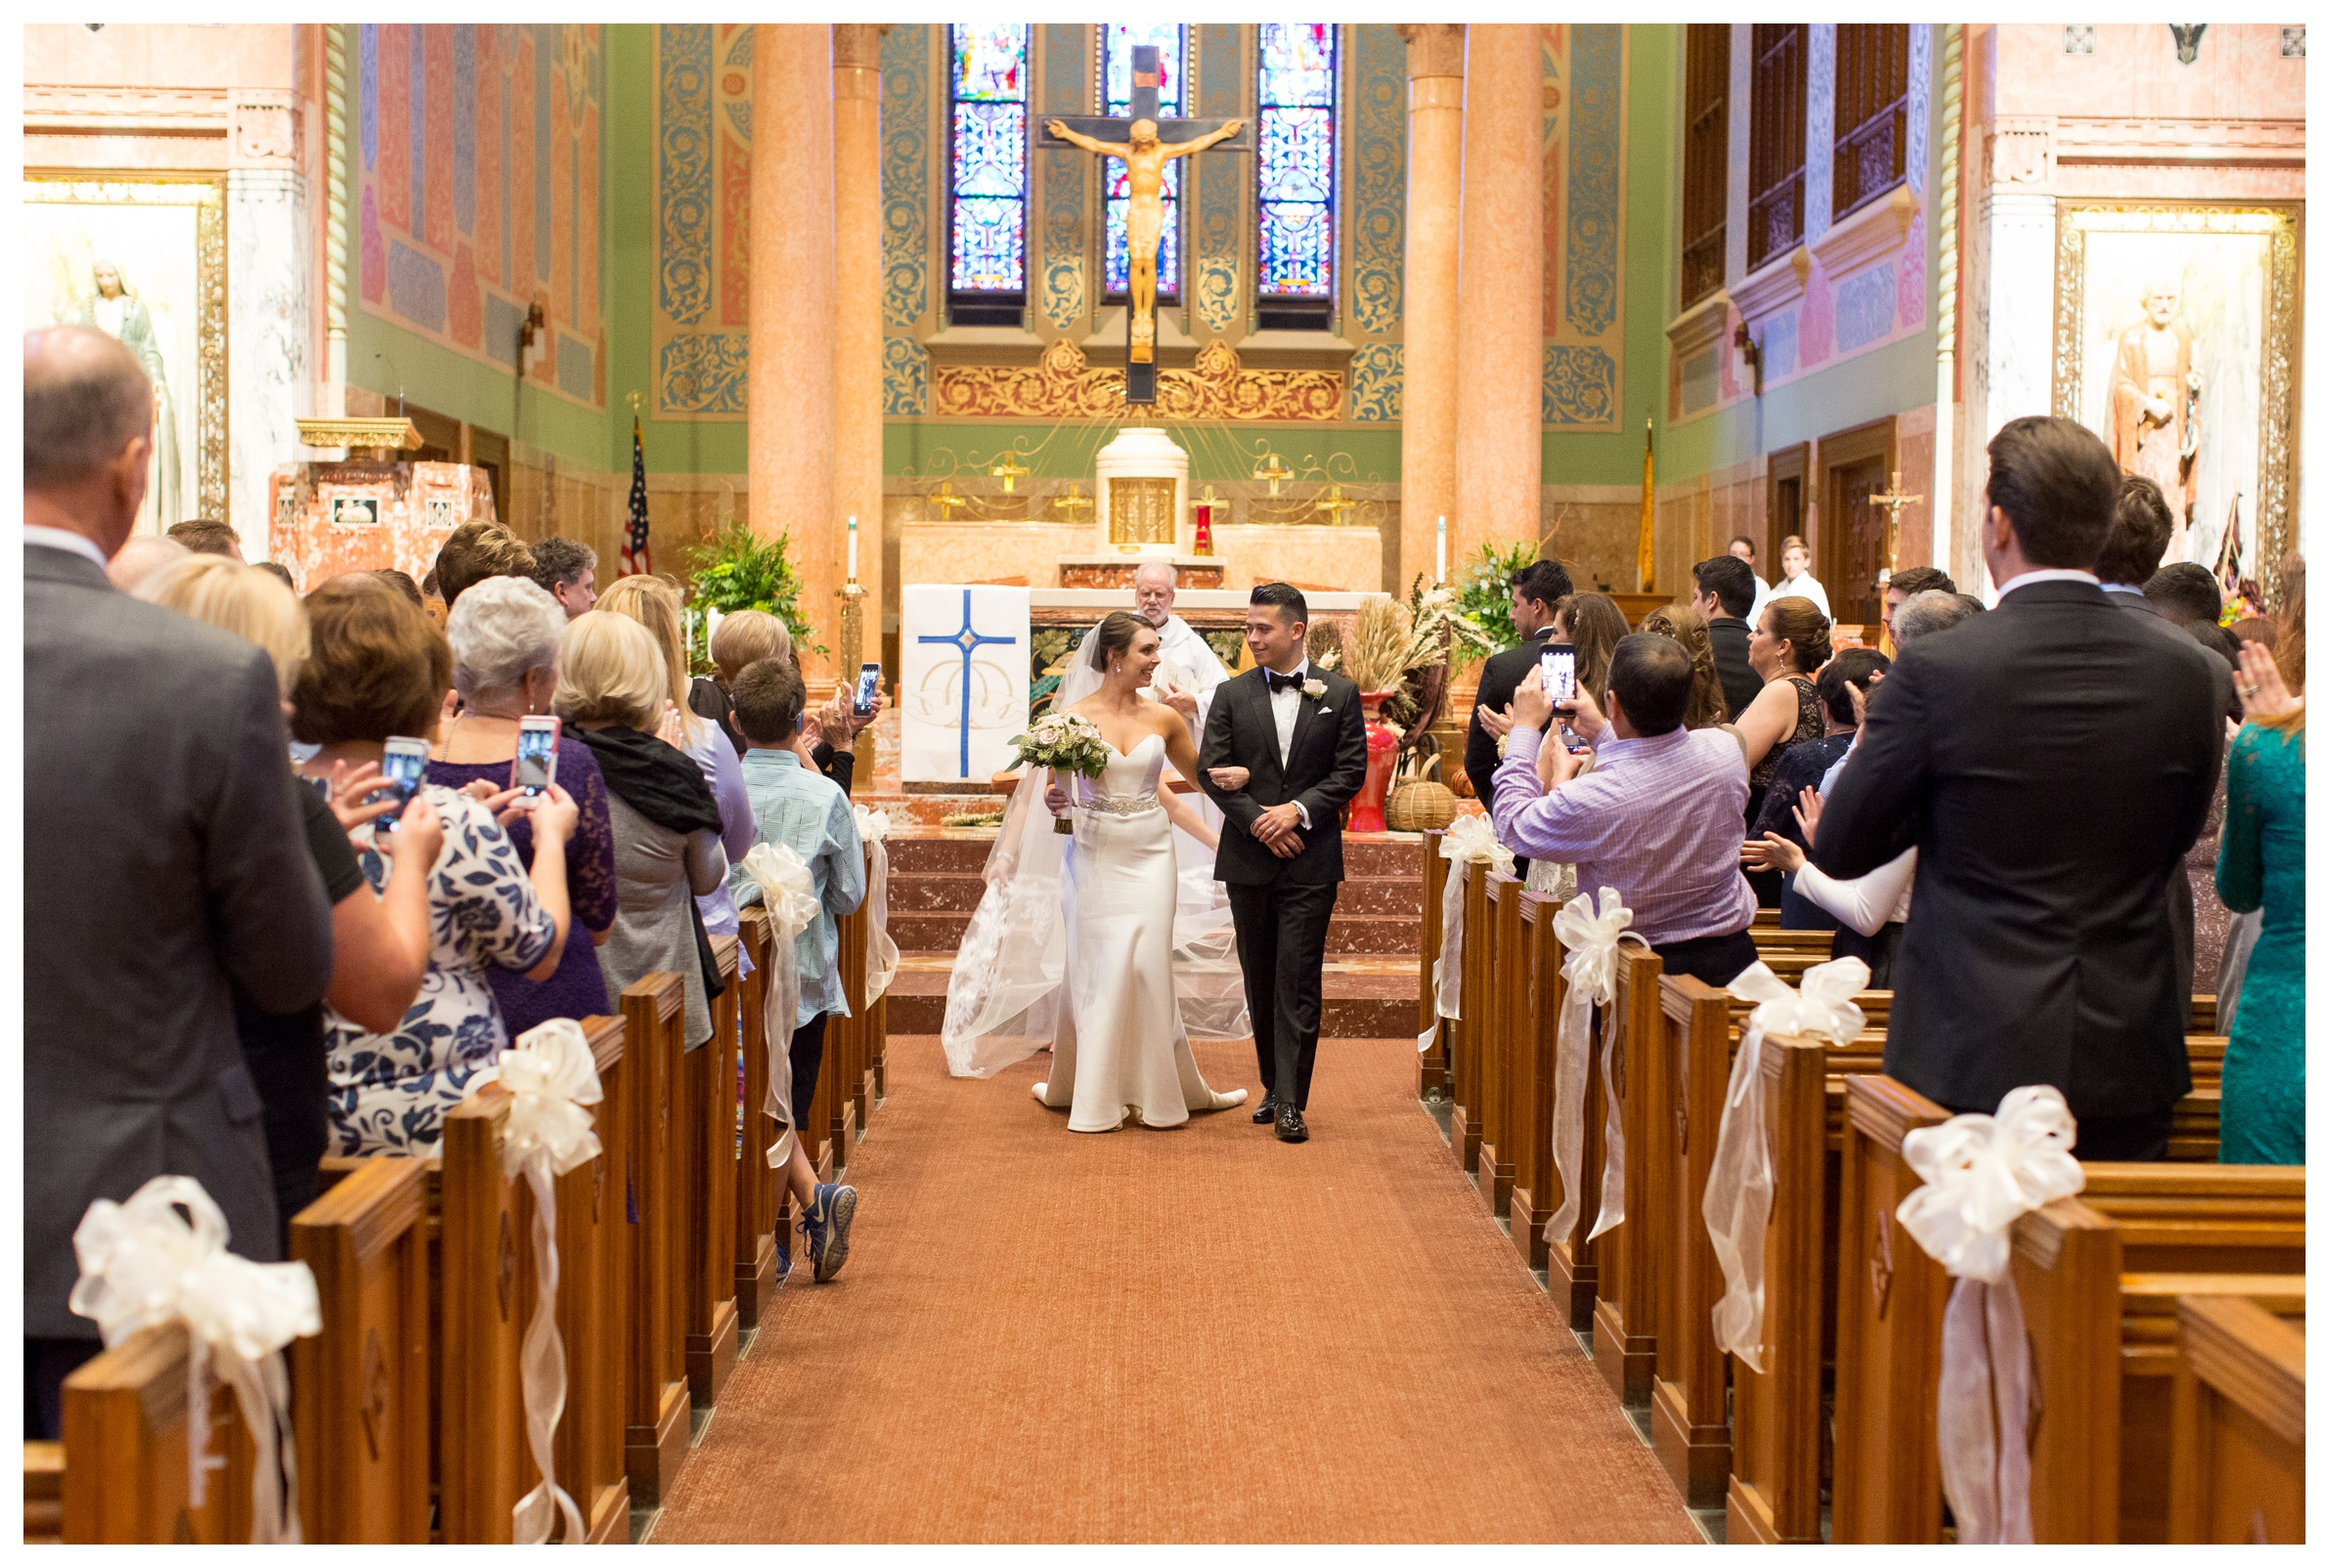 St-Giles-Catholic-Church-wedding-photos